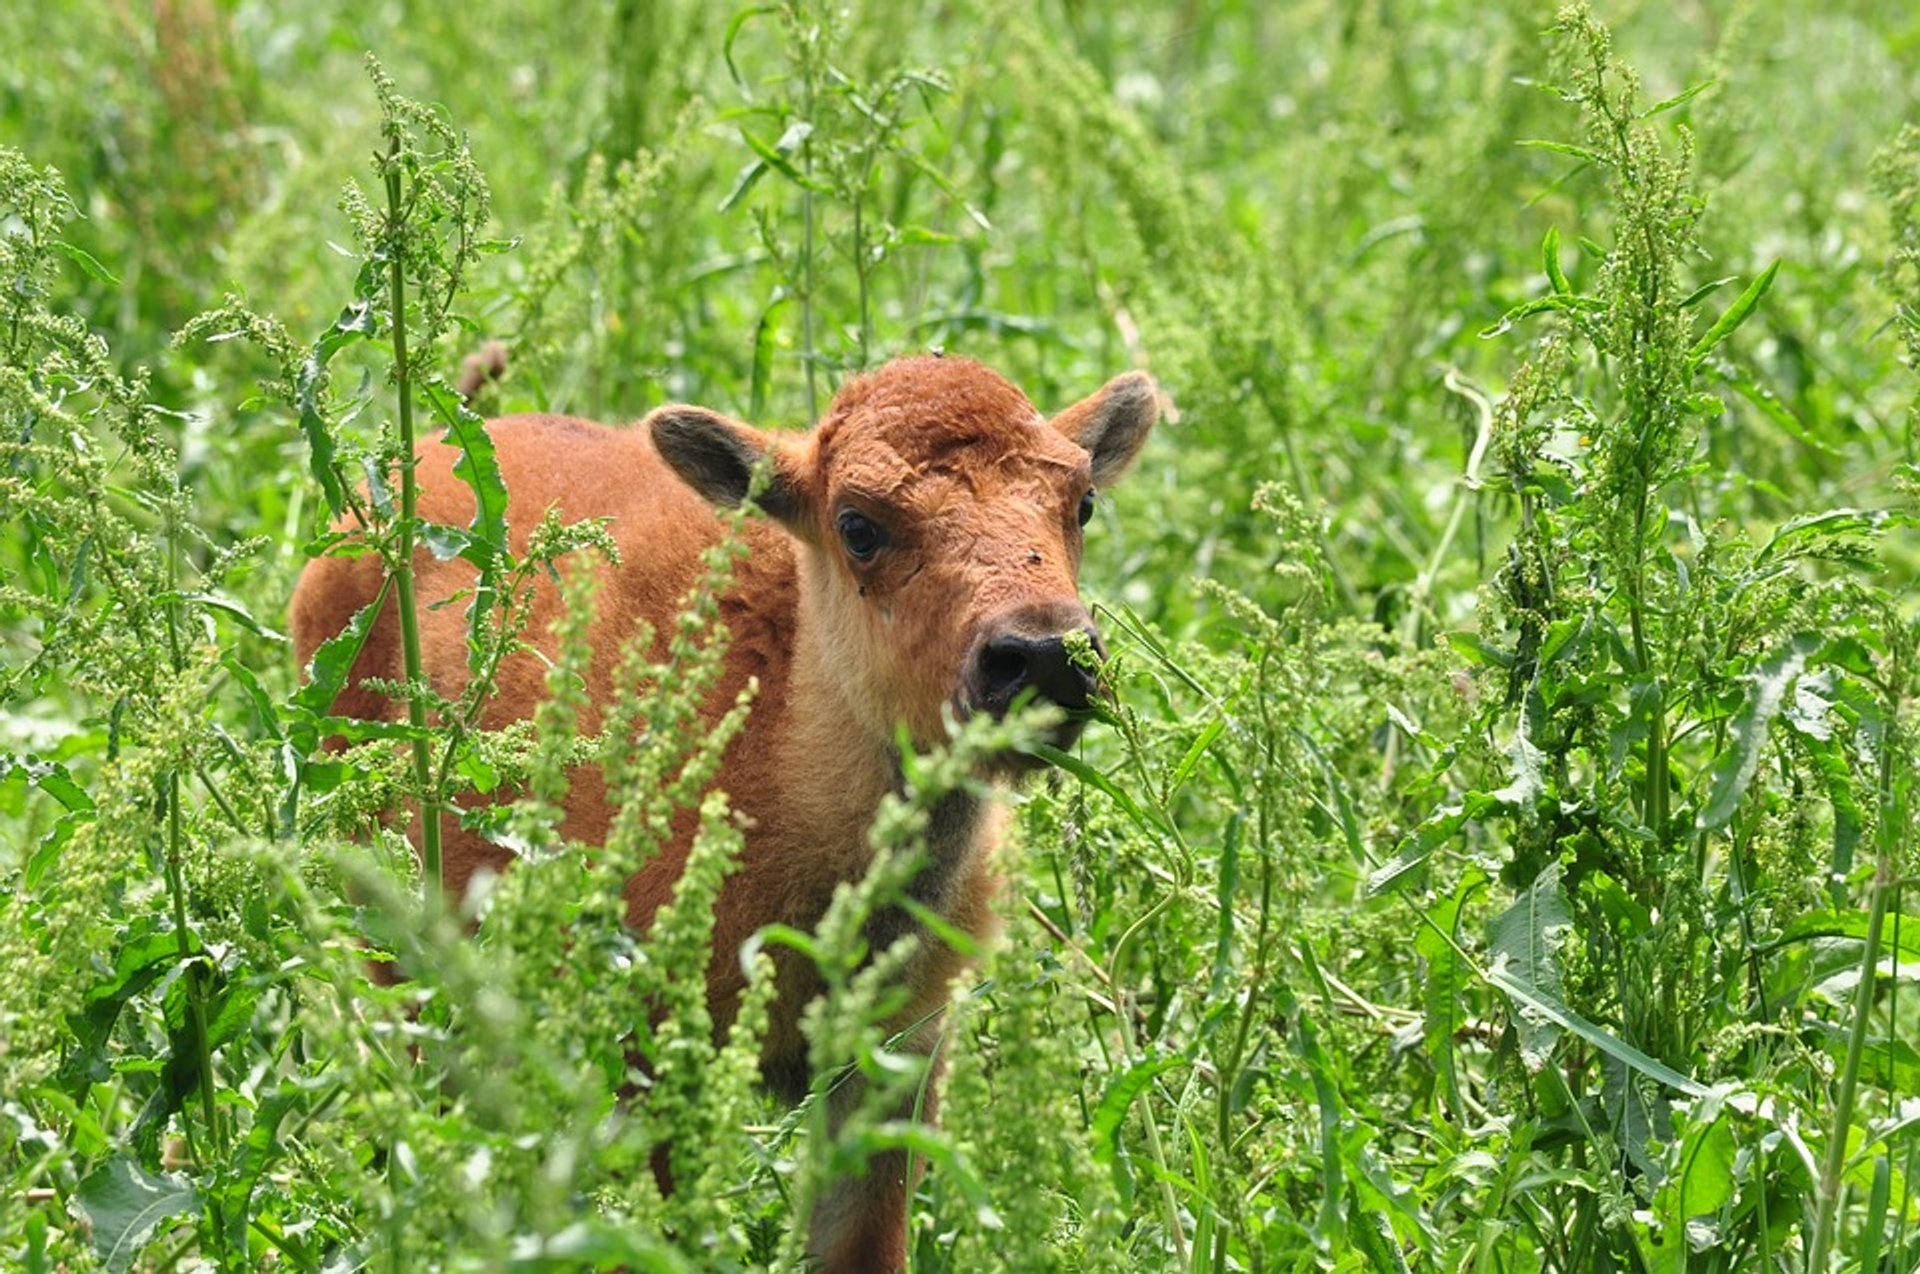 Baby Bison in the Theodore Roosevelt National Park in Midwest 2020 - Best Time